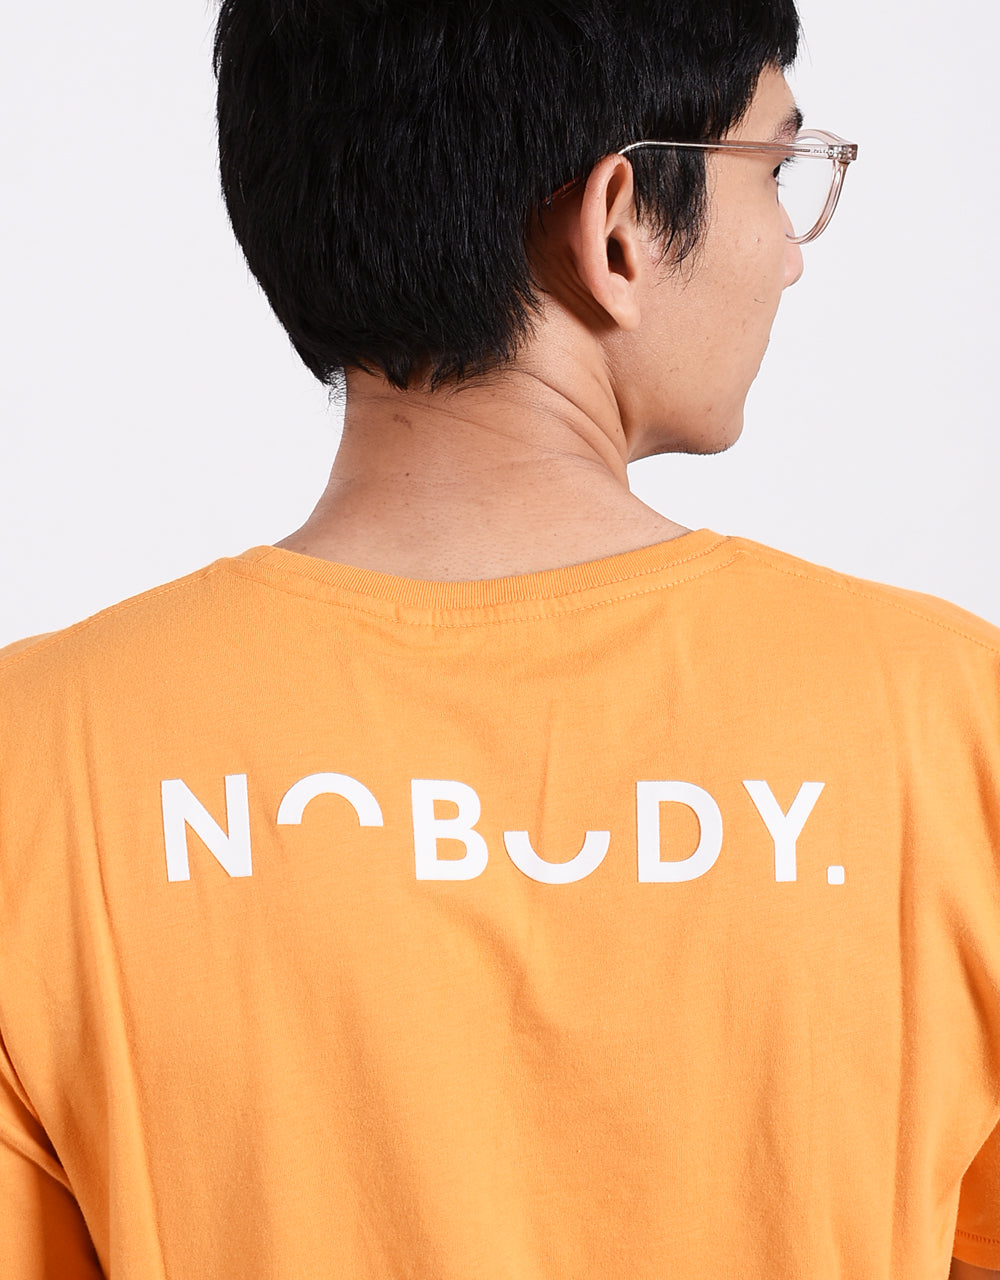 Half Nobody 2 Graphic Tees